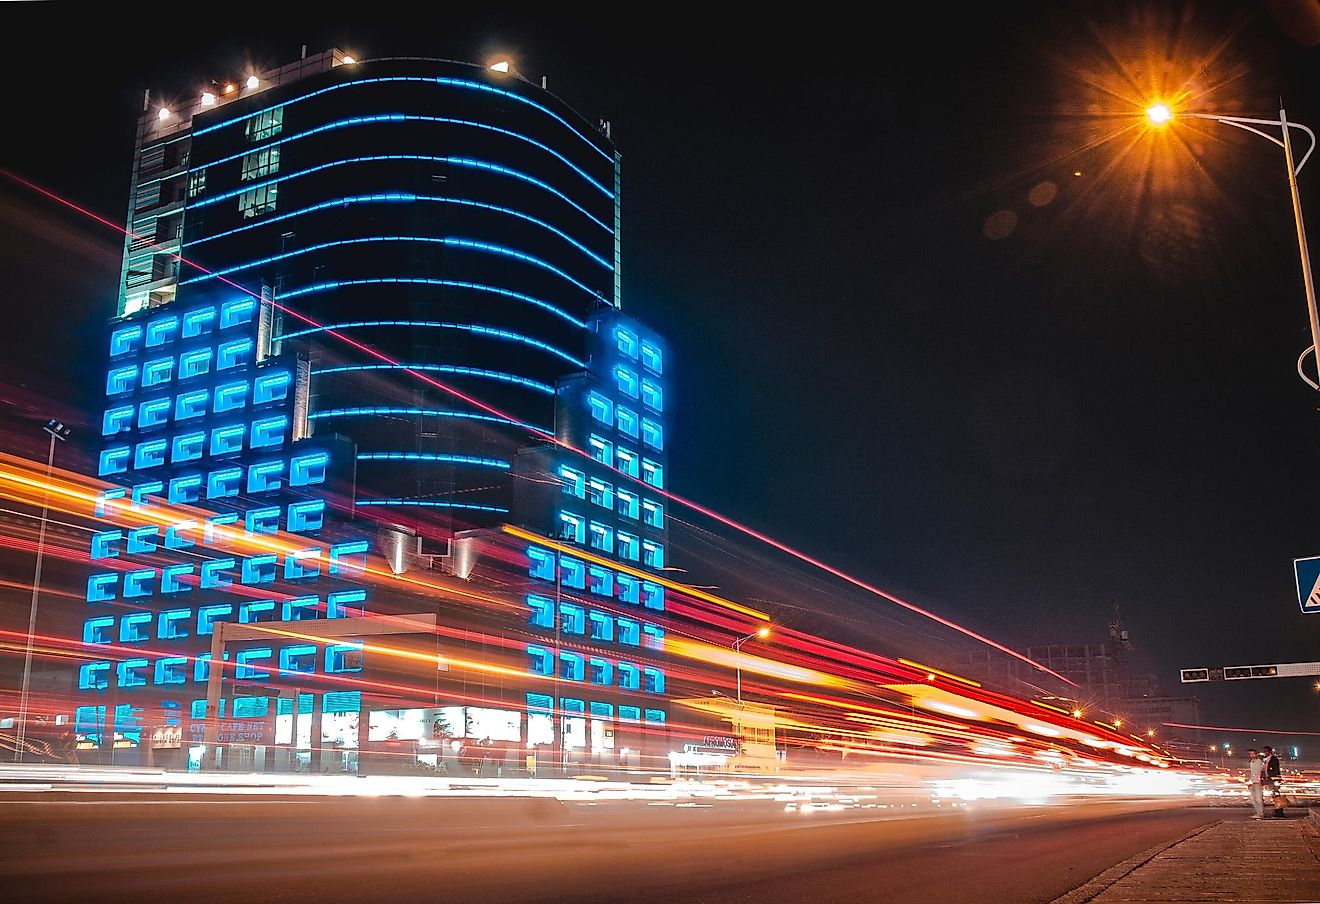 Light Streaks in front of The Future Tower on the 30 june Boulevard in Kinshasa, Congo.